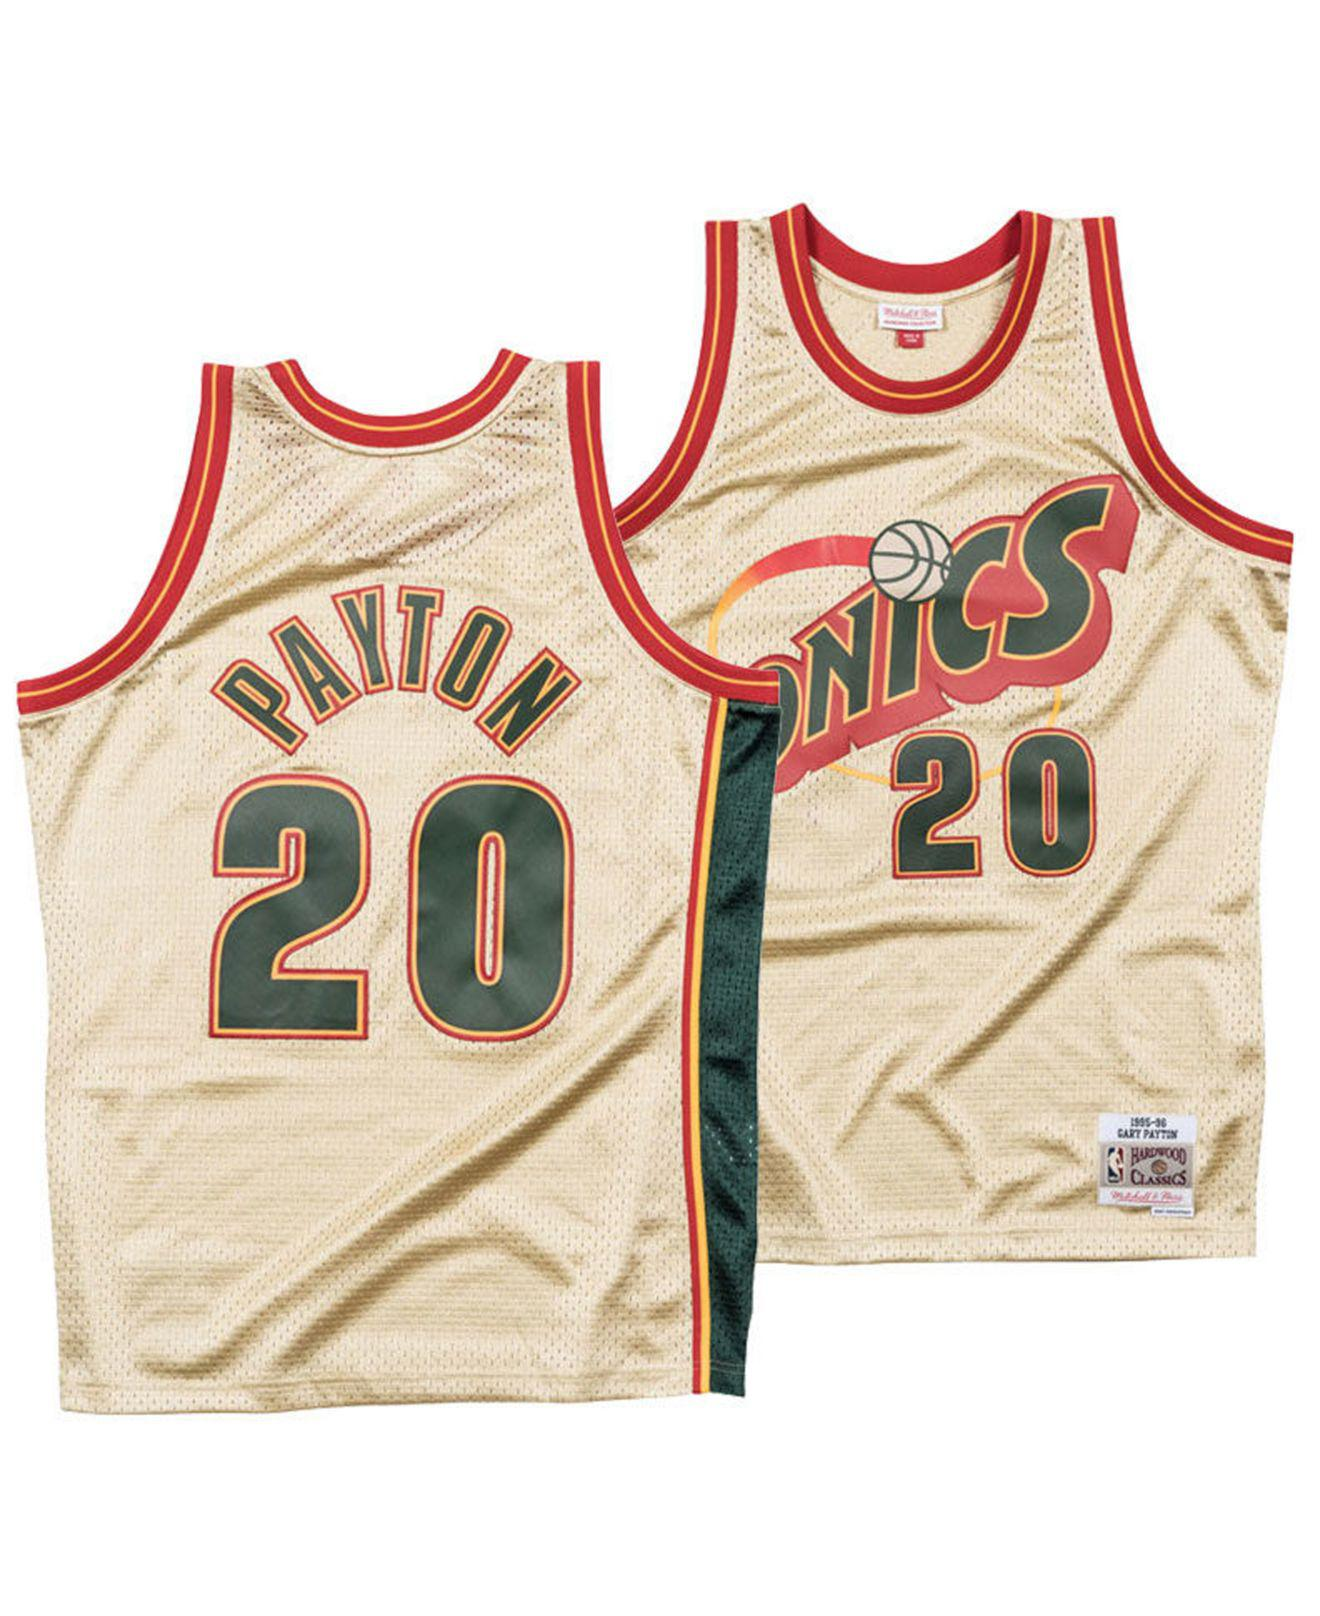 d47d935b9b9 Mitchell & Ness Gary Payton Seattle Supersonics Gold Collection ...